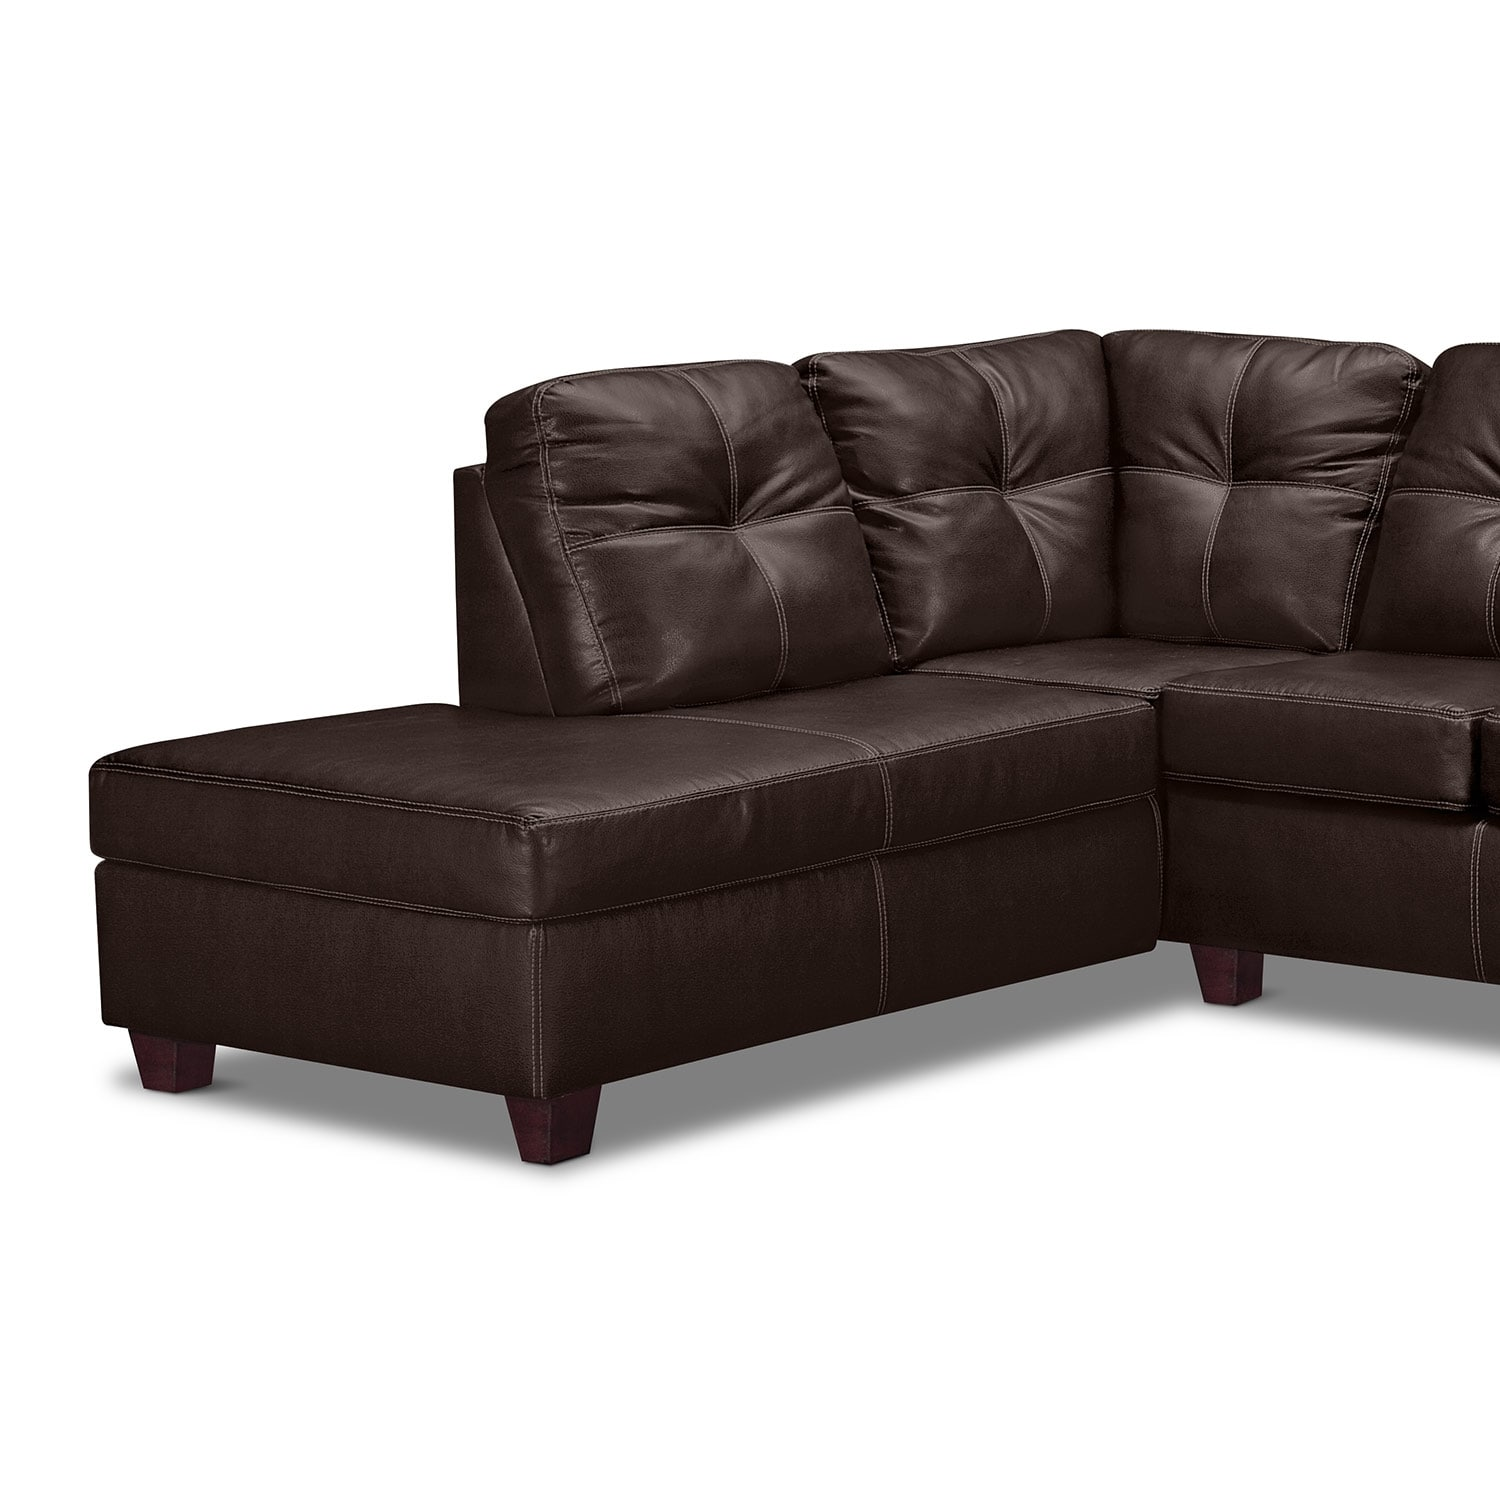 Ricardo 2 piece sectional with left facing chaise brown for Brown sectional sofa with chaise